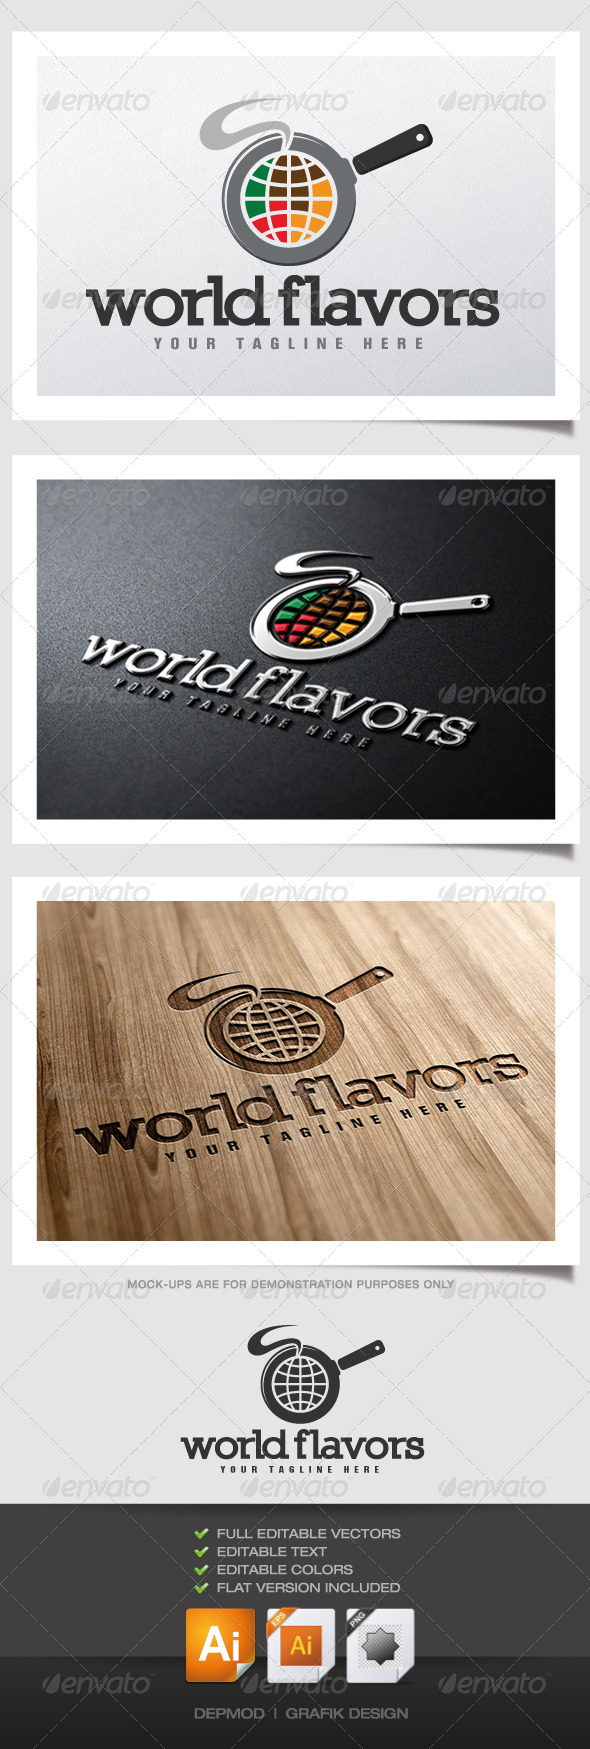 GraphicRiver World Flavors logo 4564617